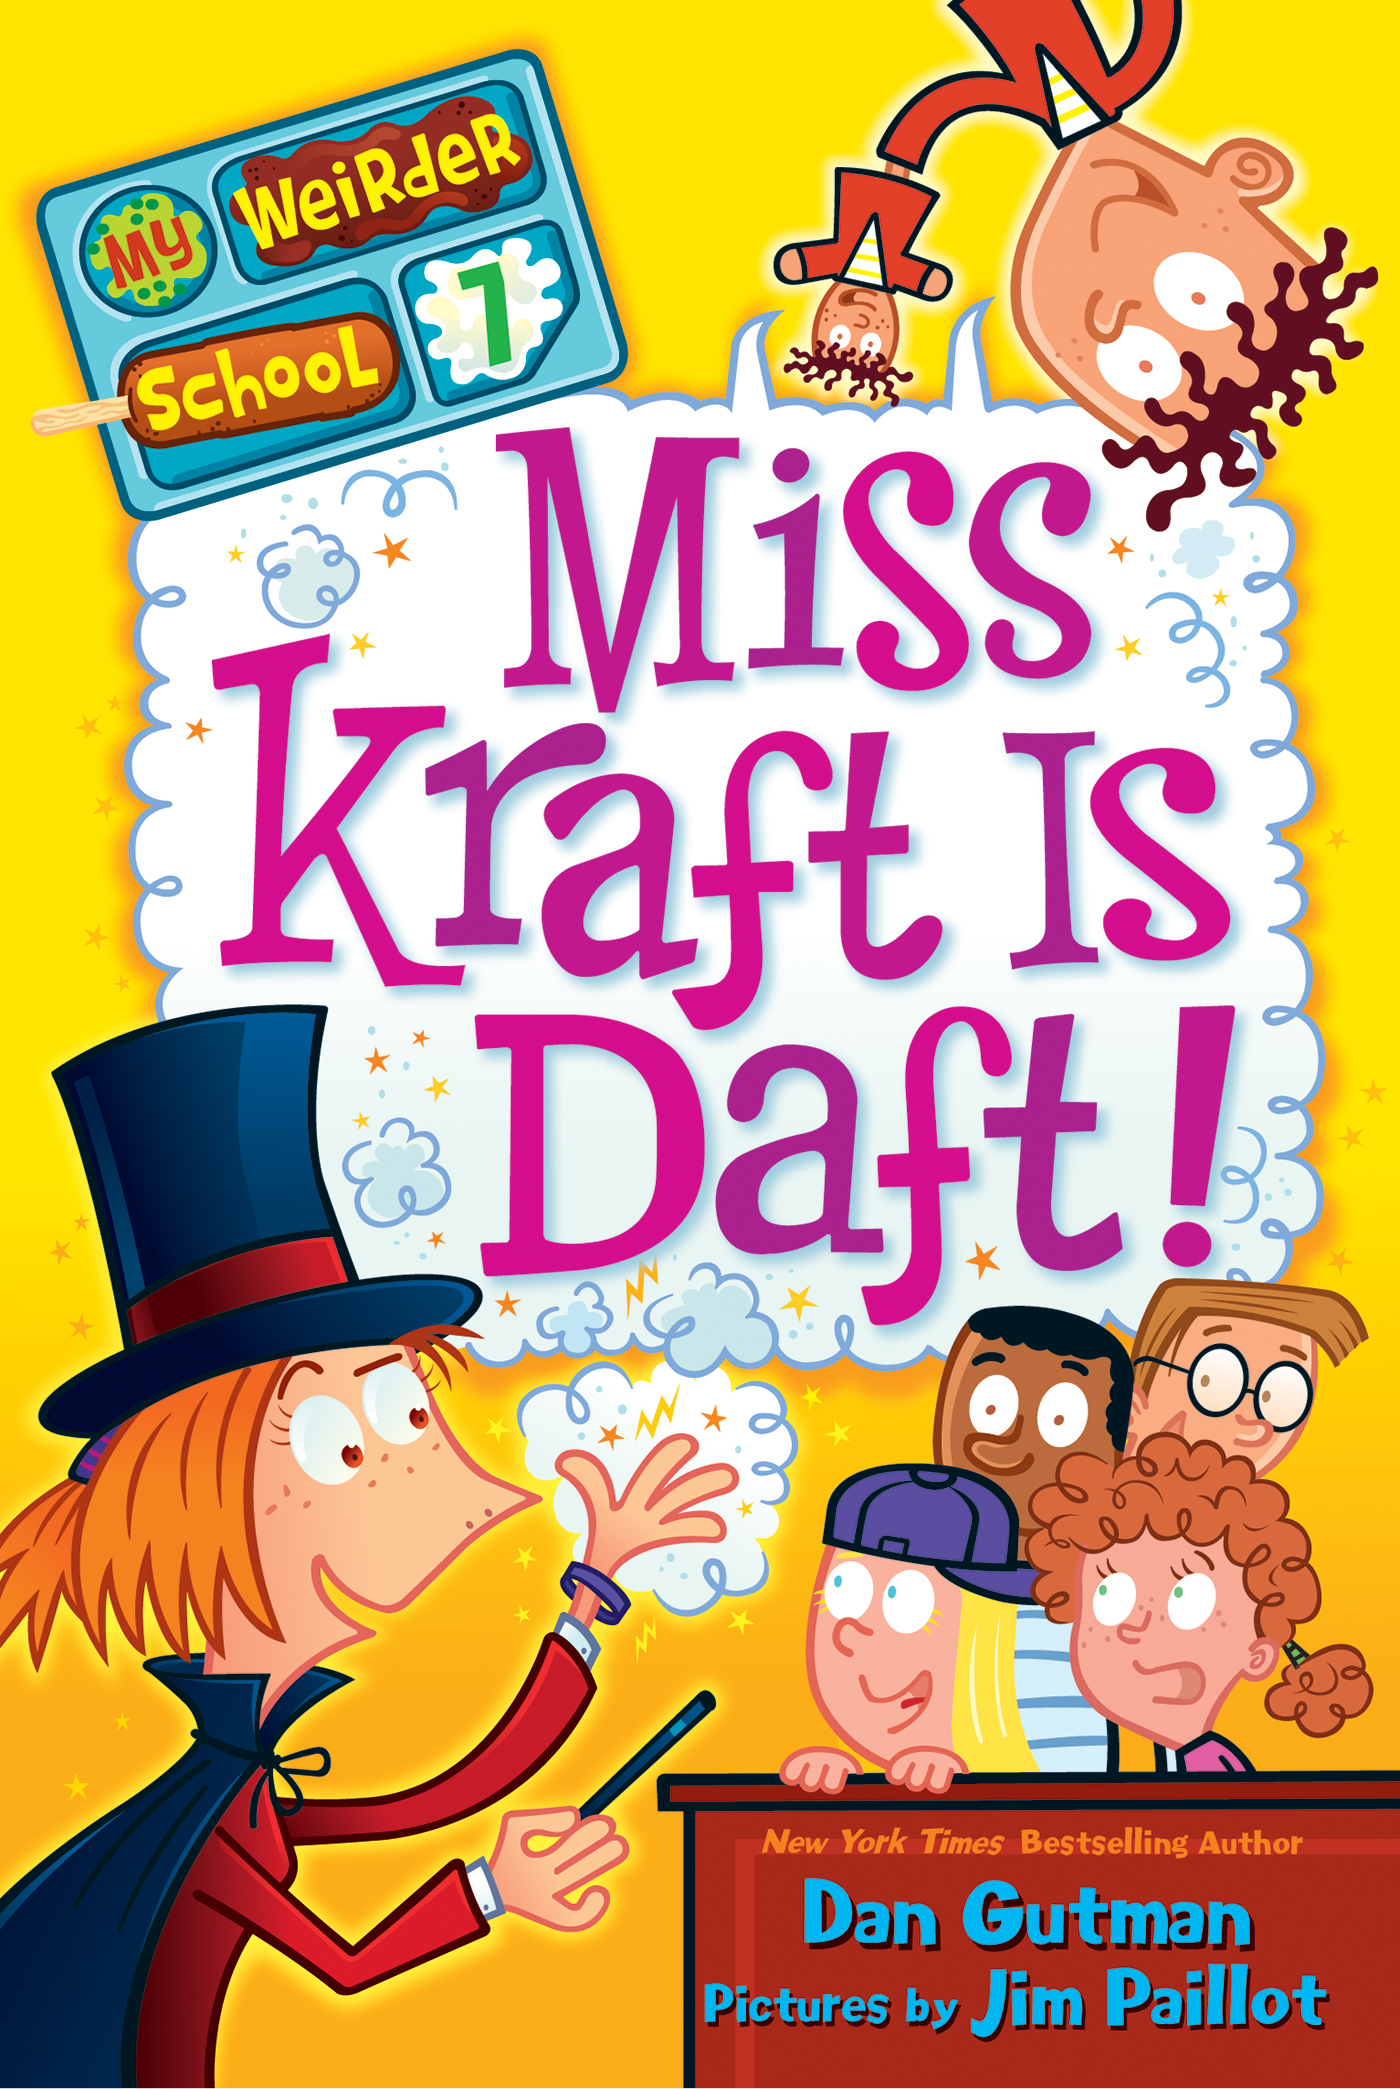 My Weirder School #7: Miss Kraft Is Daft! By: Dan Gutman,Jim Paillot